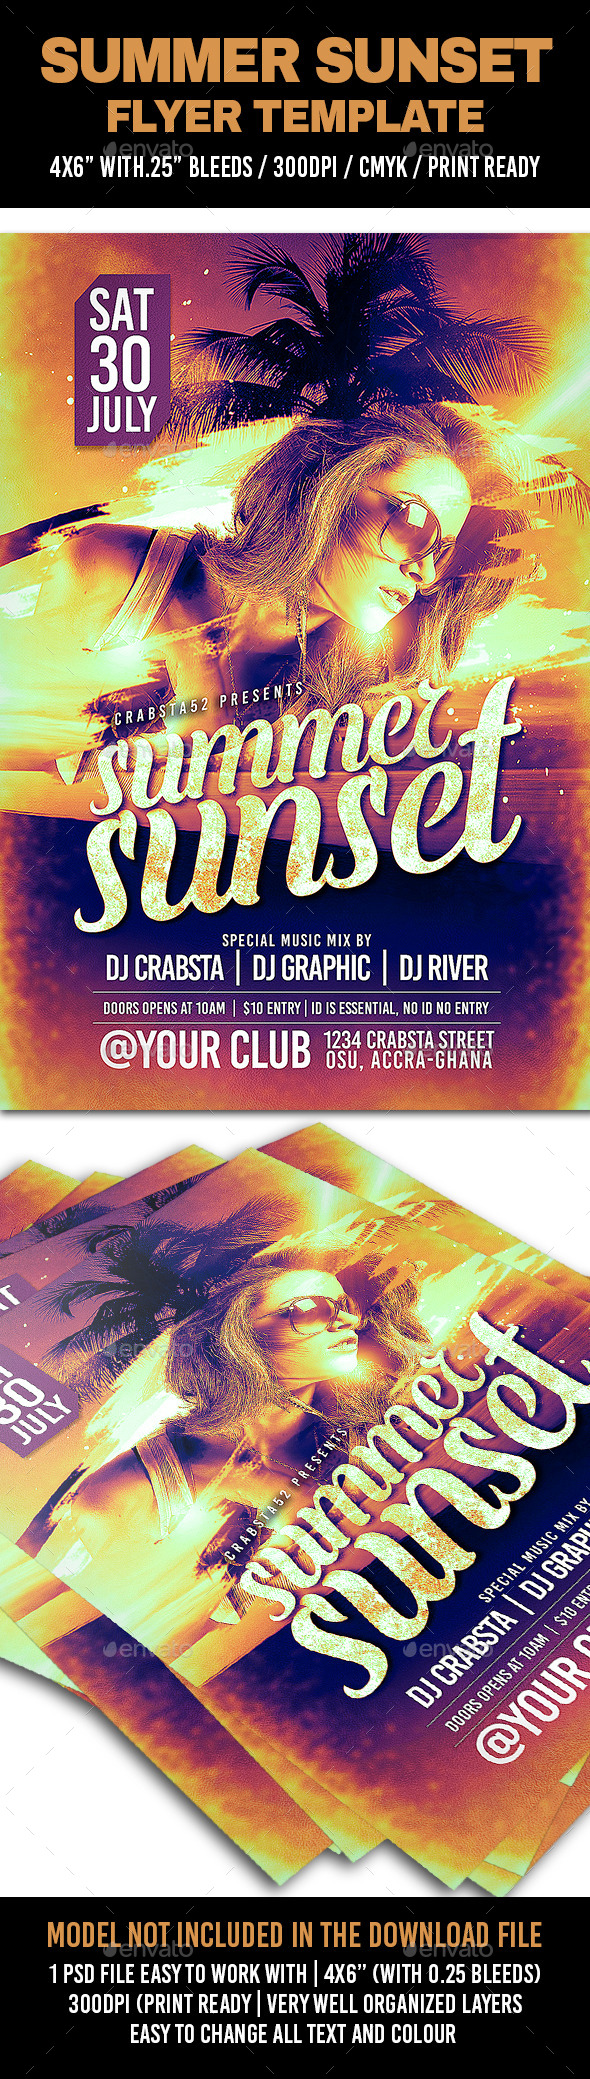 Summer Sunset Flyer Template - Clubs & Parties Events